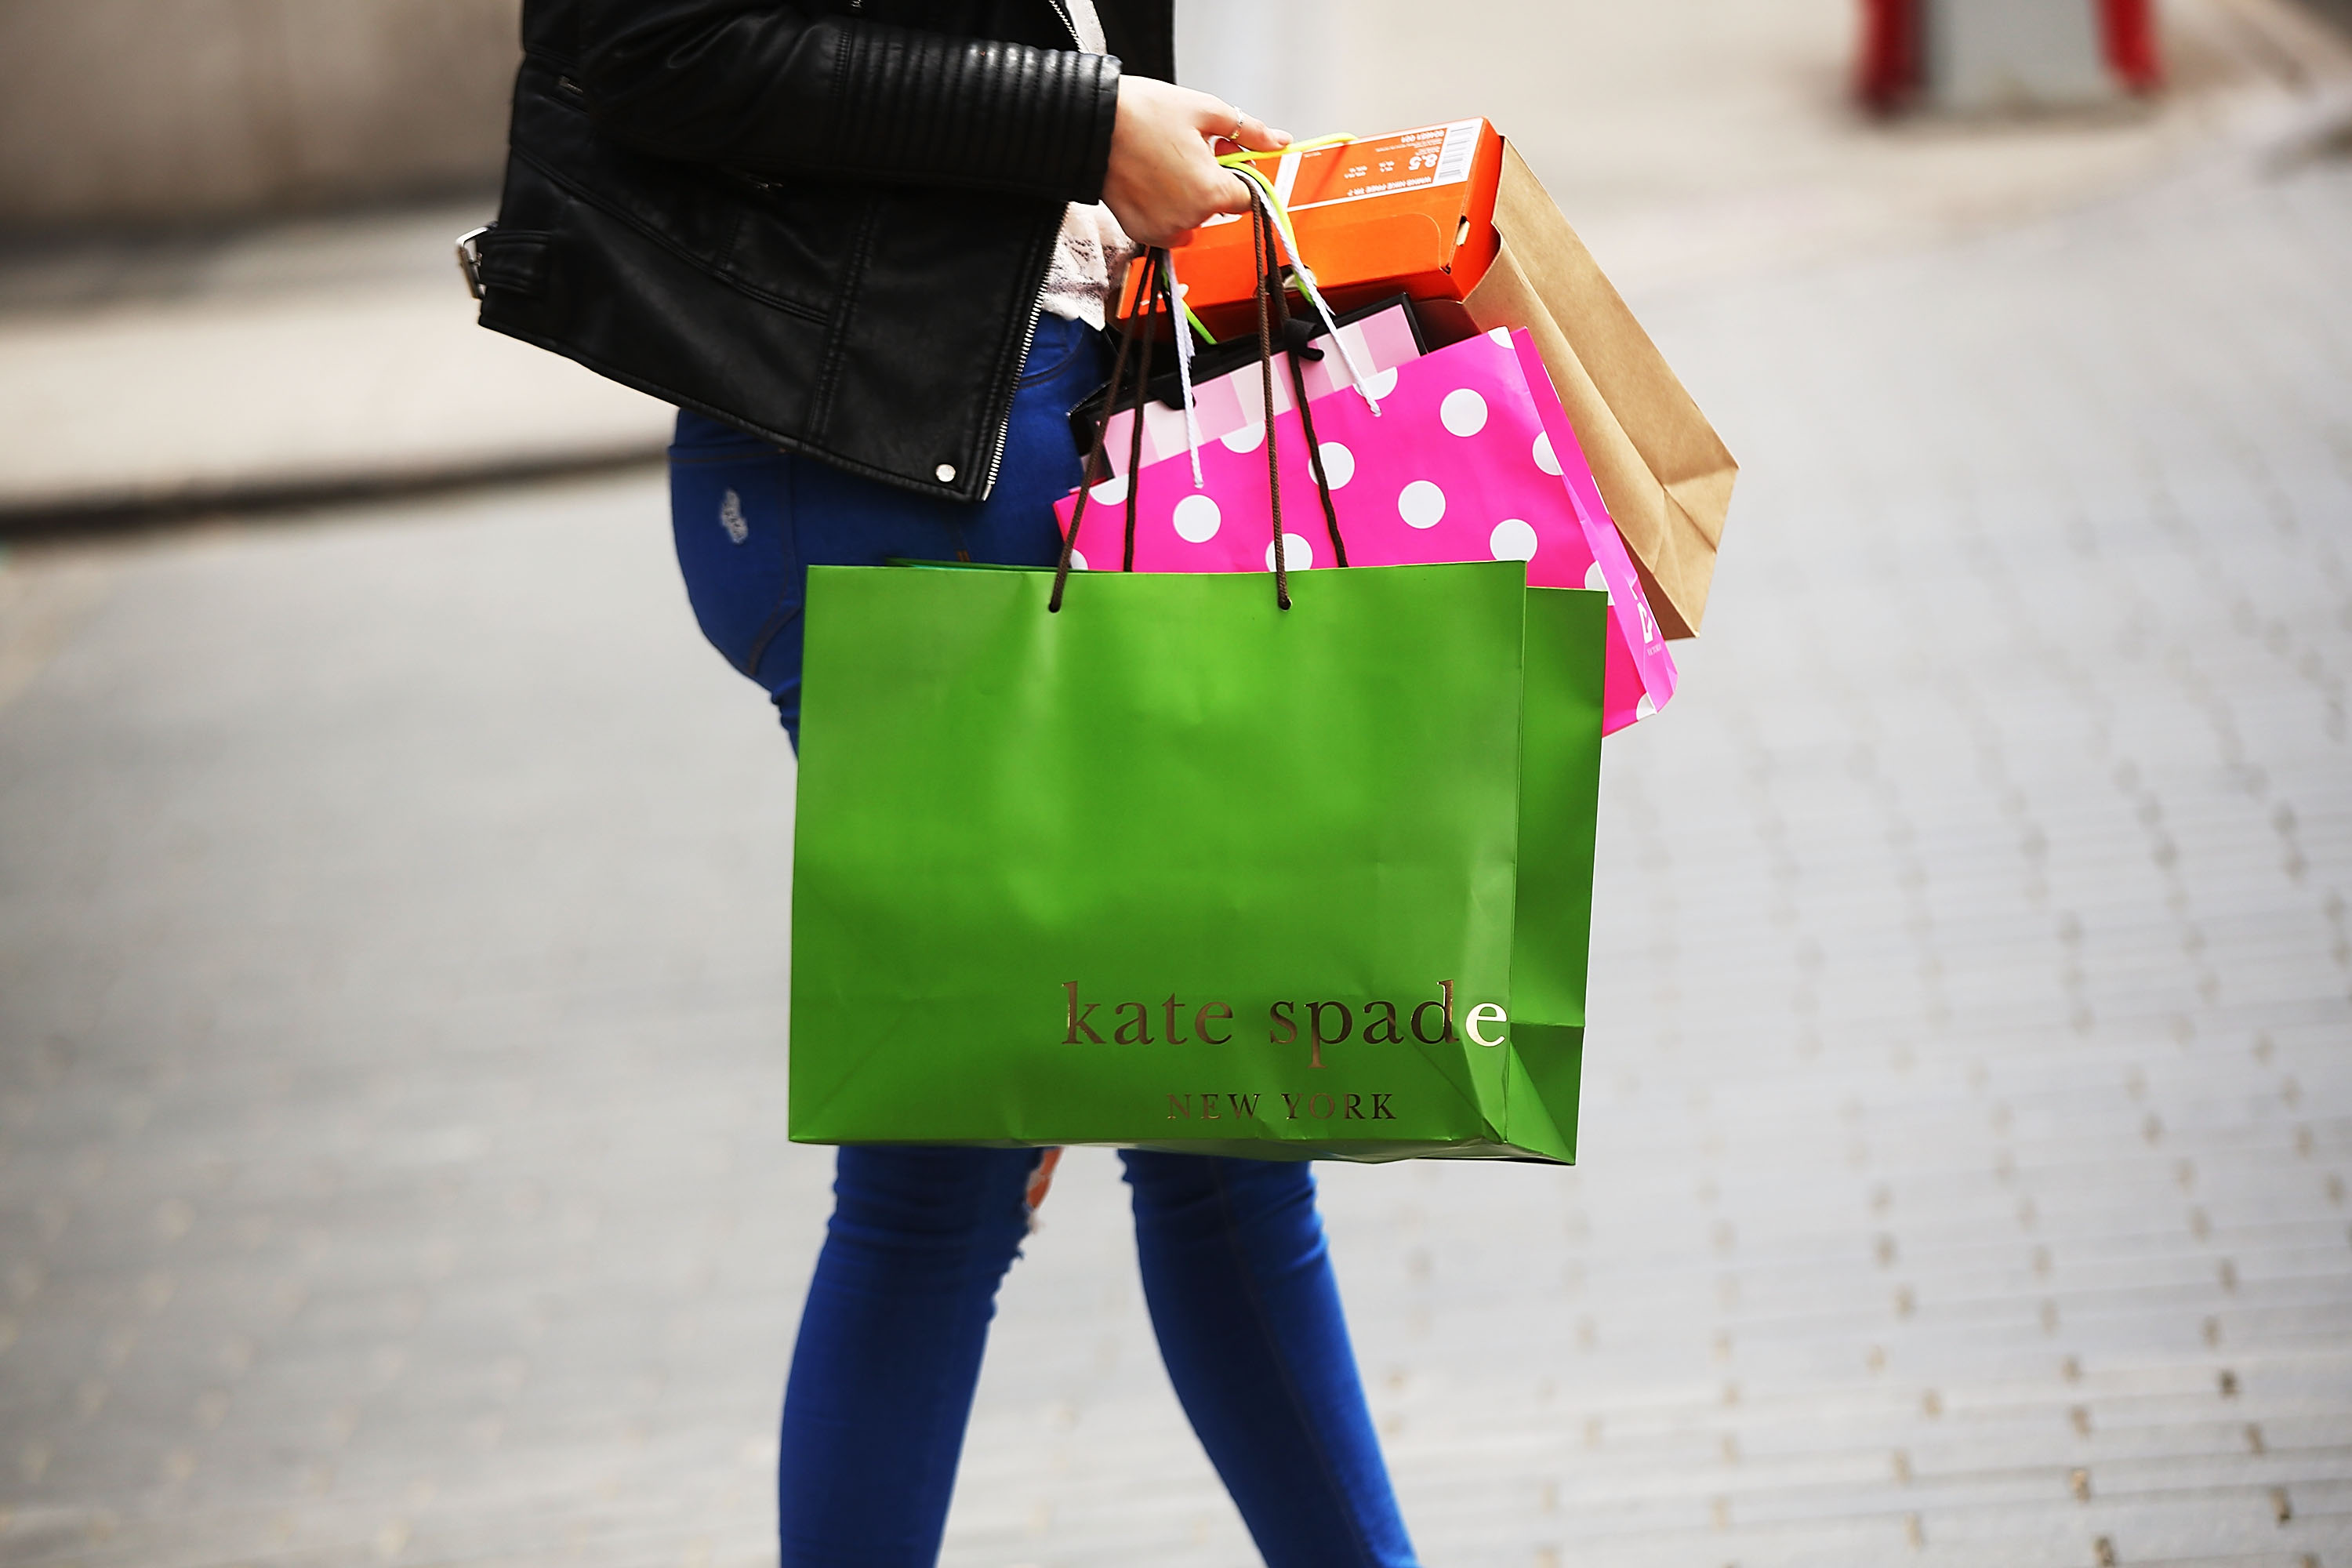 Kate Spade facts